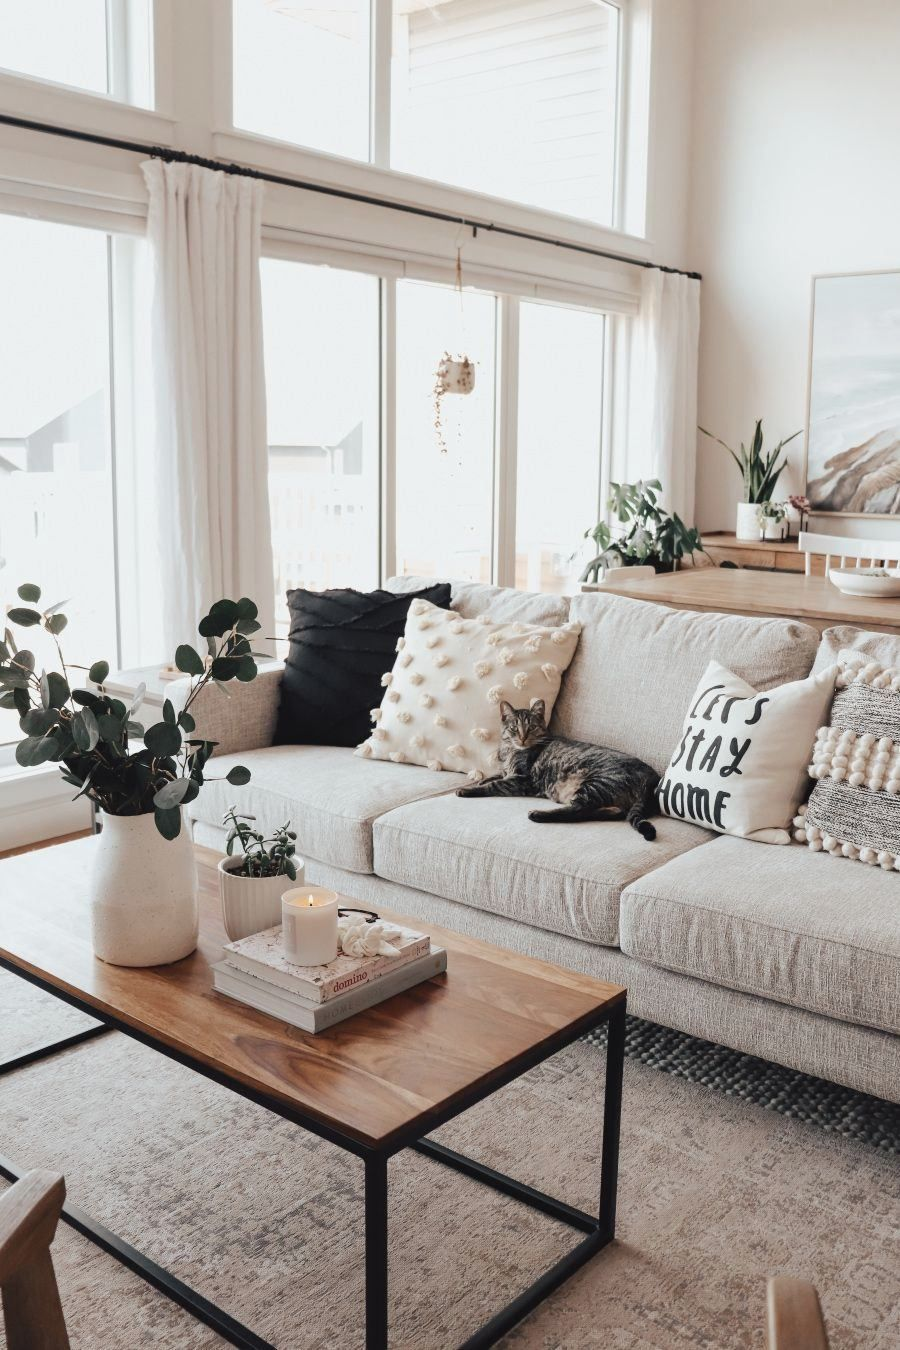 How To Style A Small Living Room - #livingroomdesigns